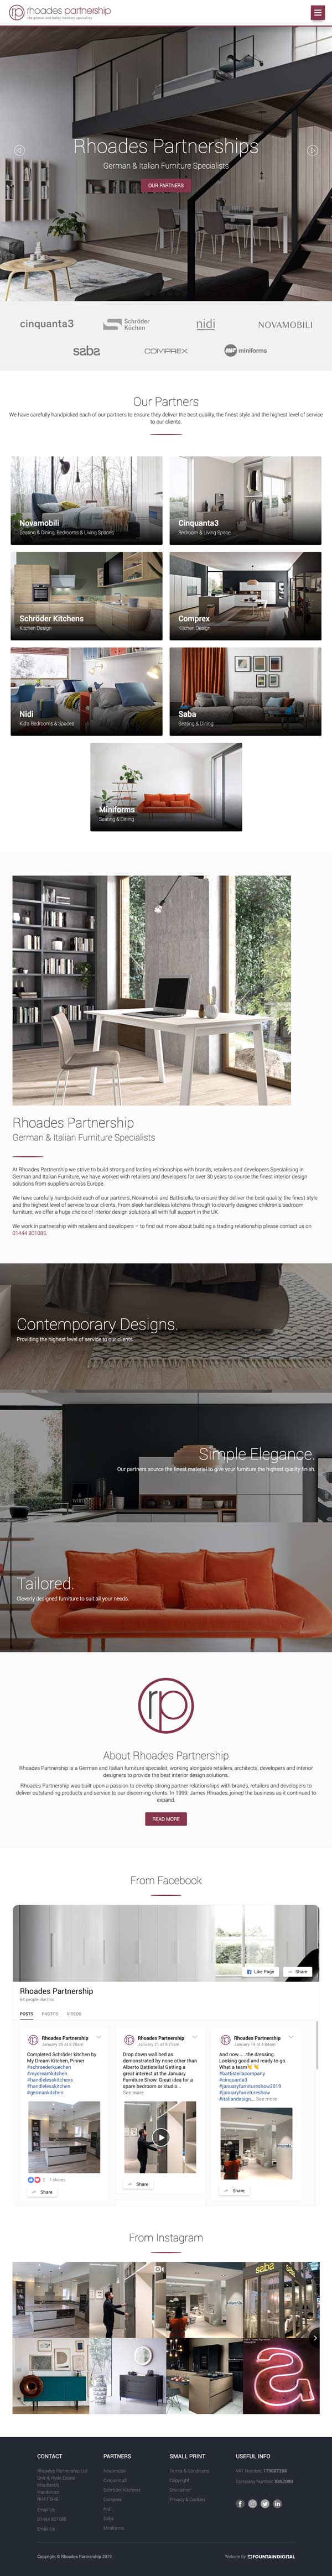 ipad image of website design